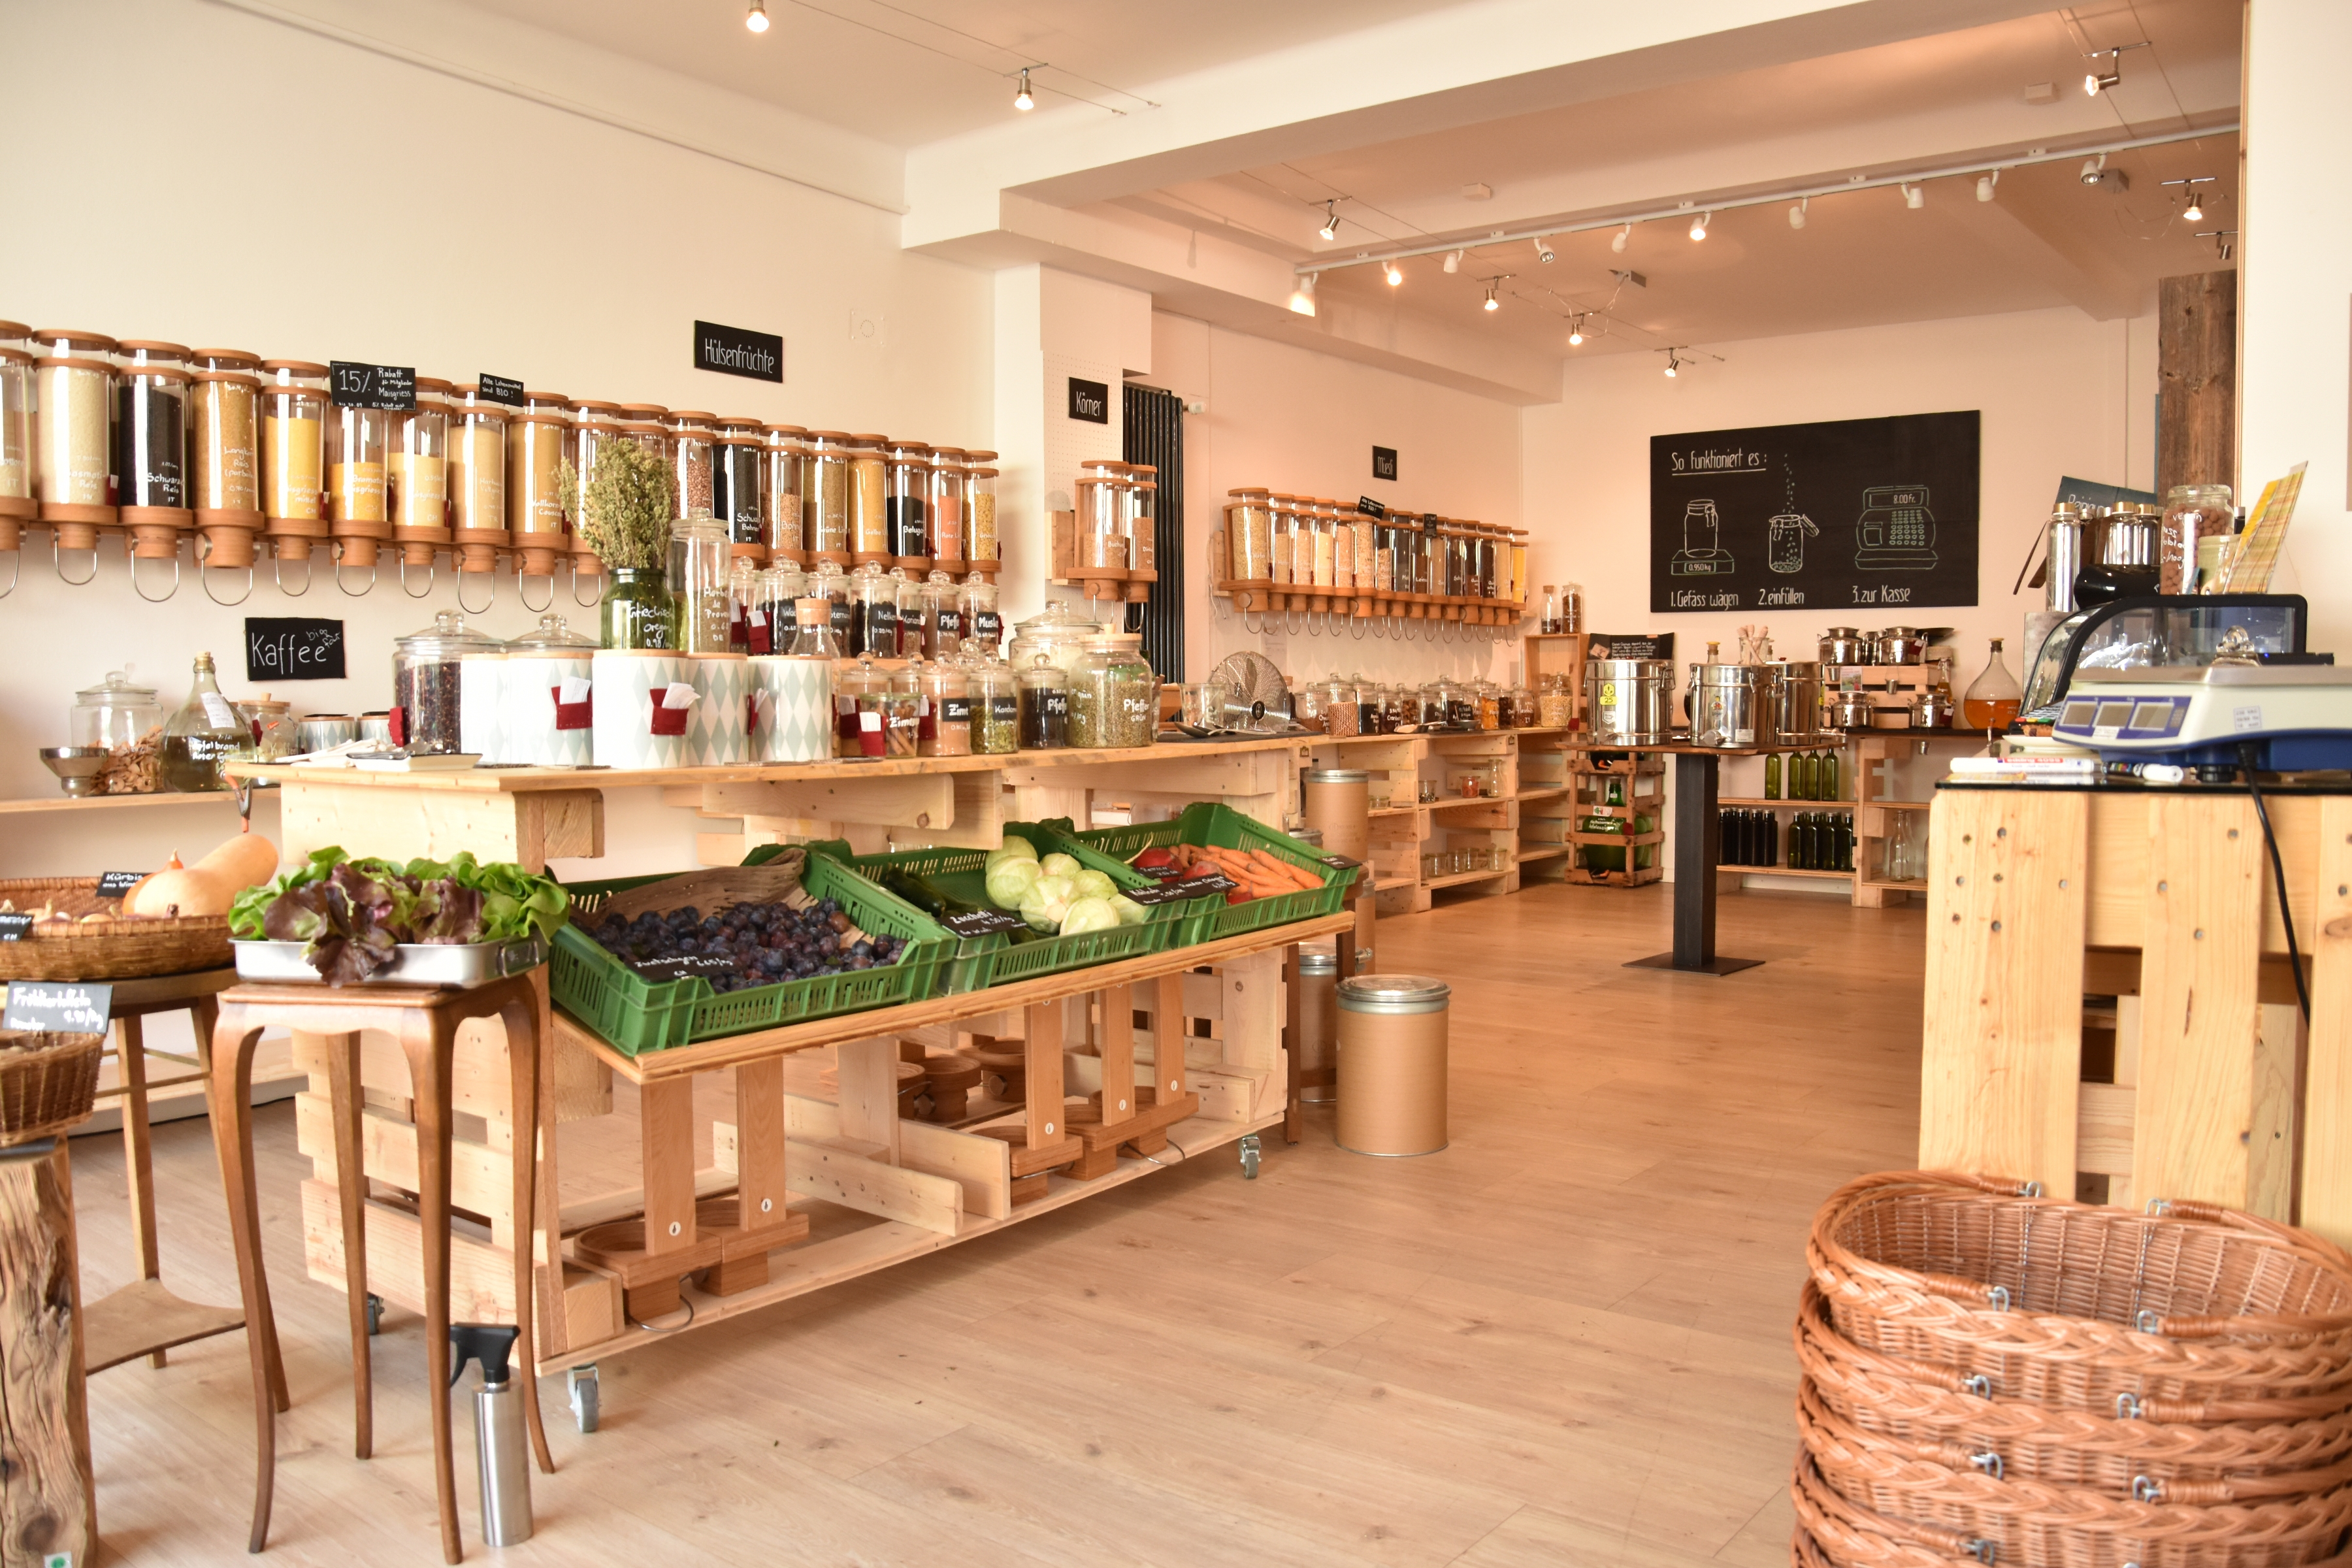 14072edfa The store offers package-free, organically produced foods, organic cleaning  products, natural cosmetics and zero-waste gadgets.